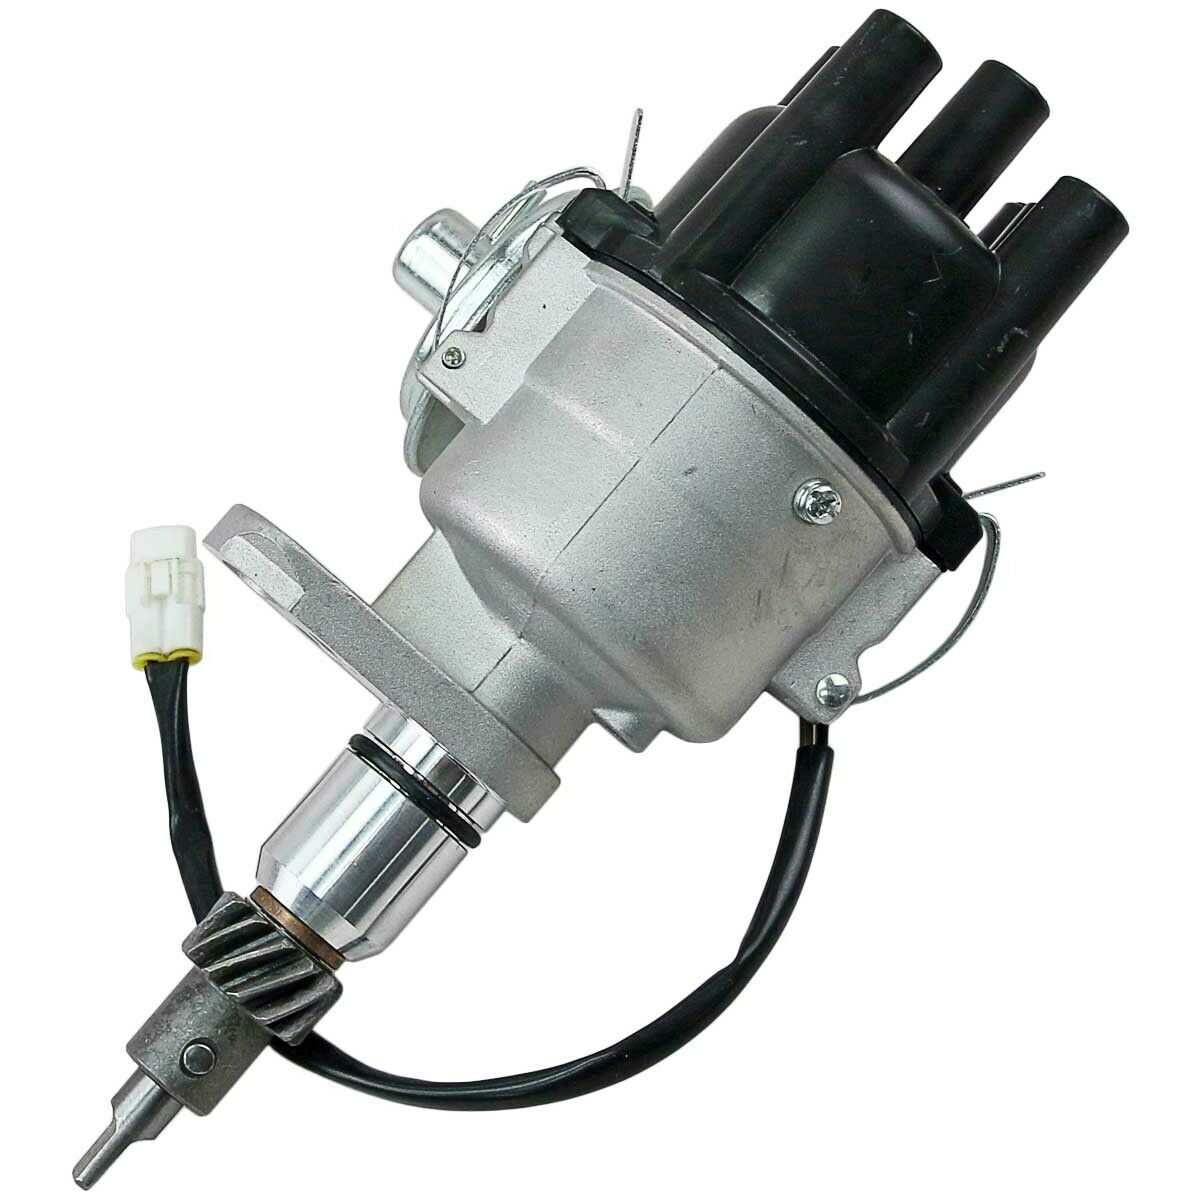 Toyota Corolla Liteace Starlet Electronic Distributor 3k 4k 5k Ke70 Alternator Wiring Diagram 1 Of 11only 3 Available